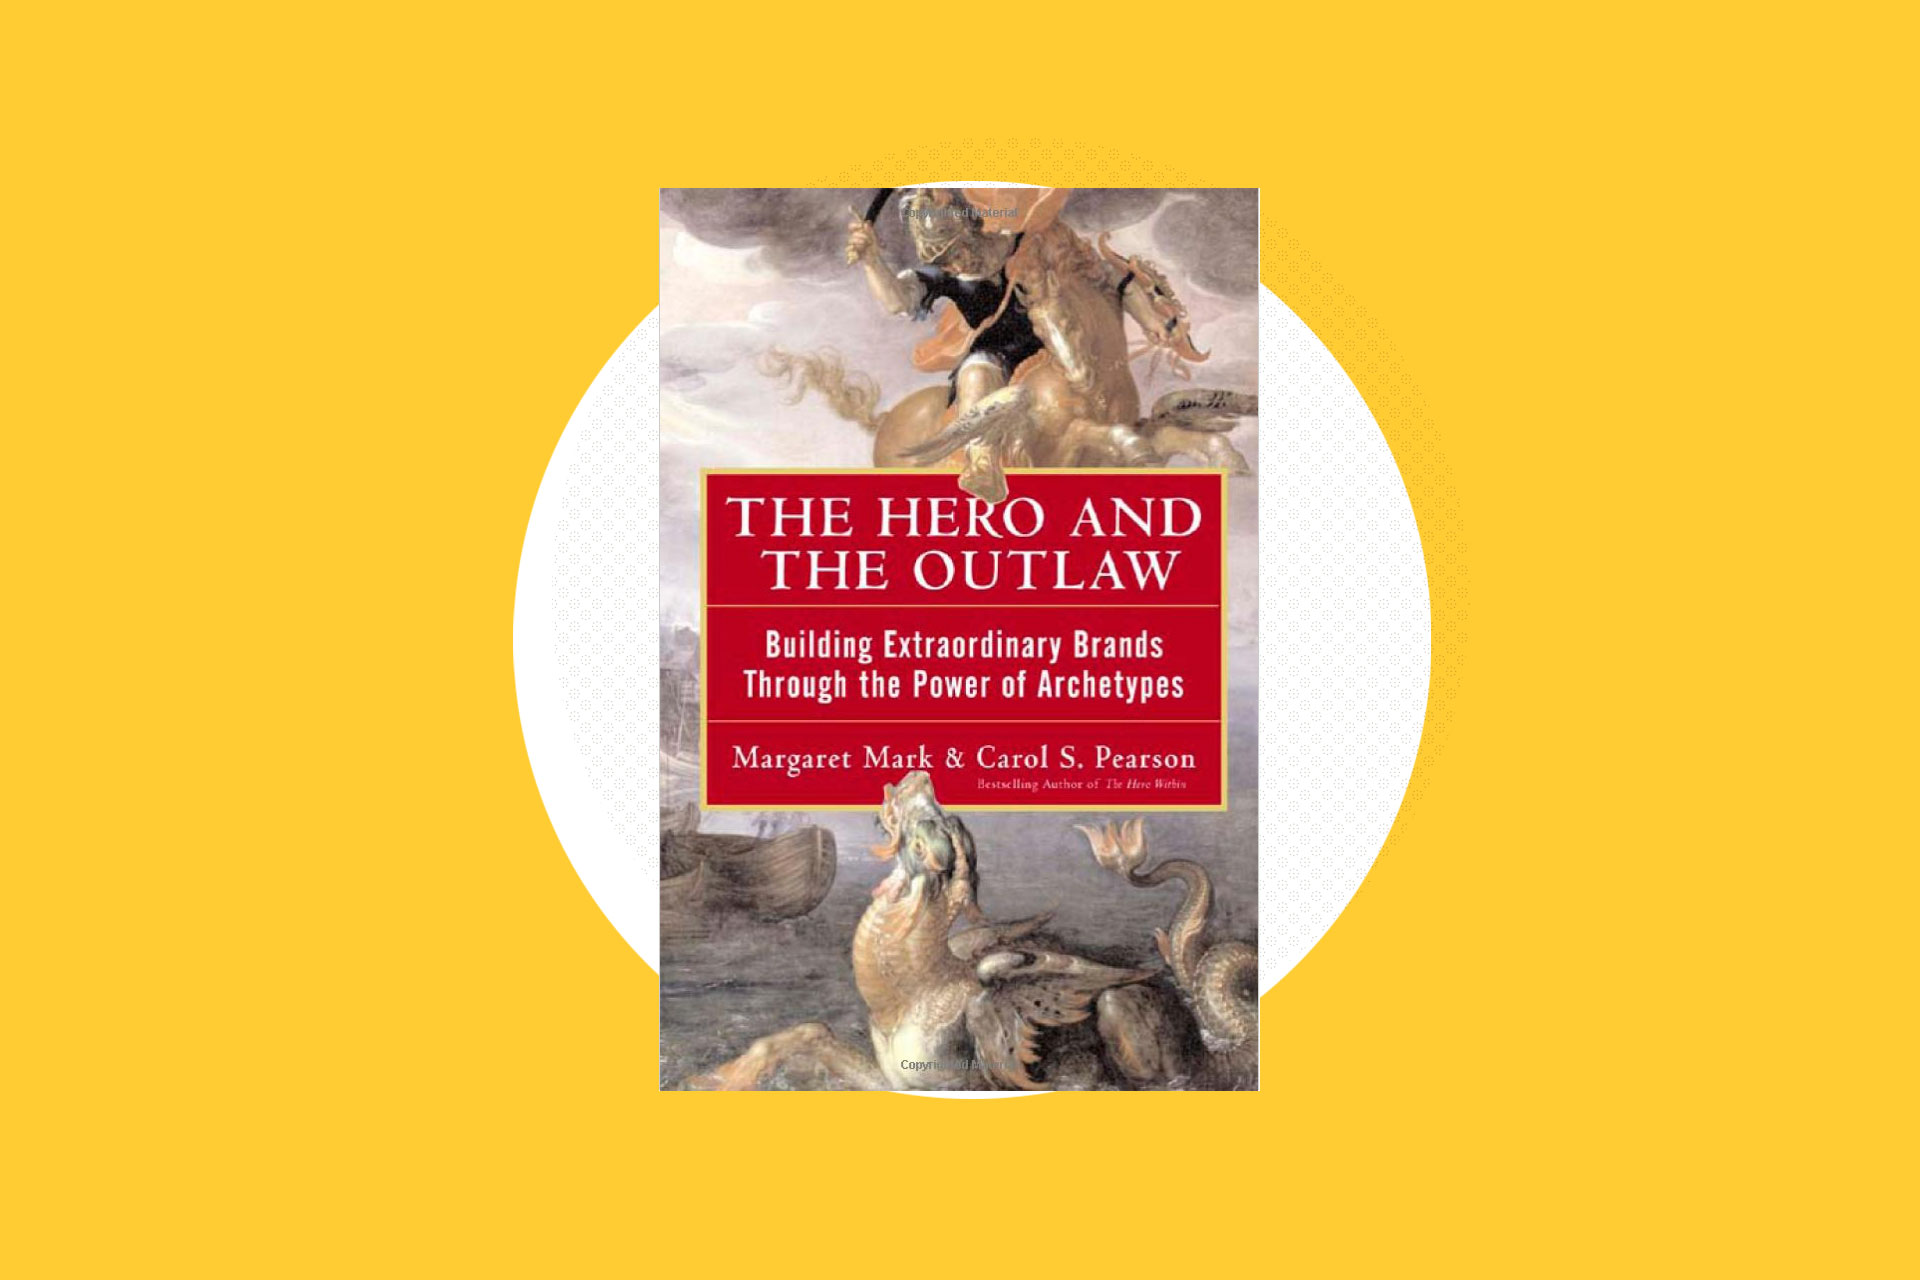 Book Review: The Hero and The Outlaw